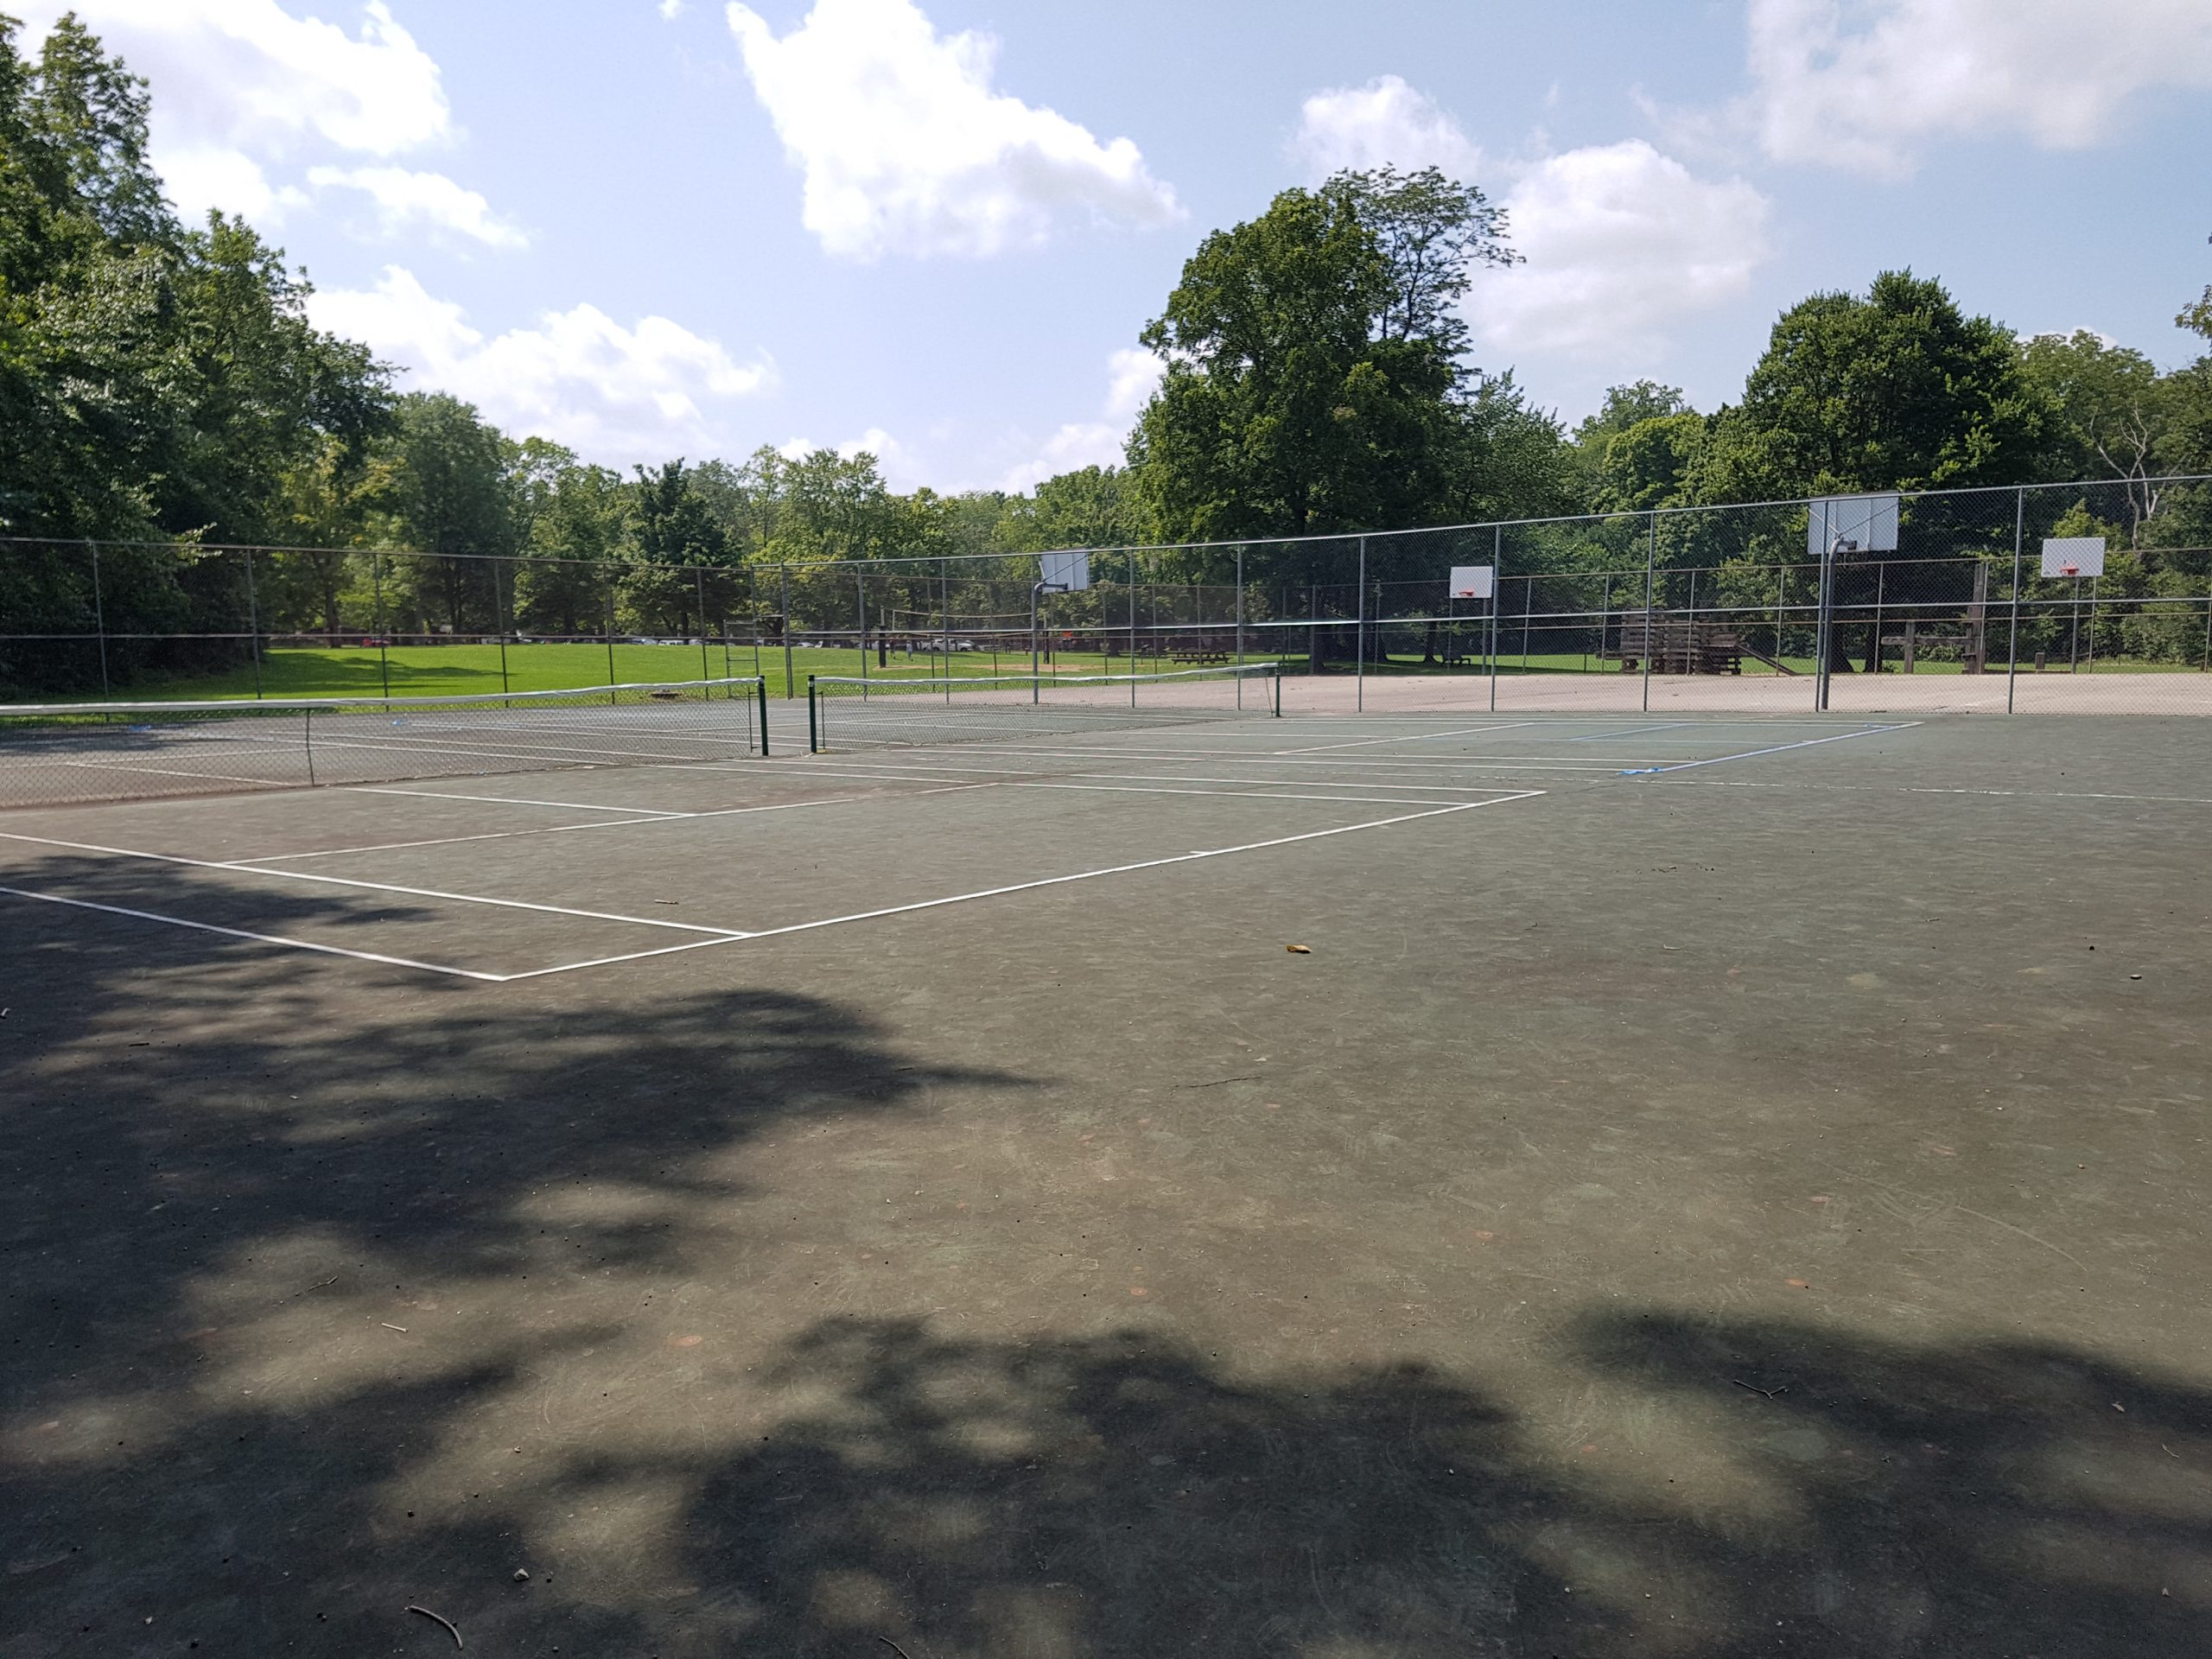 Tennis and Basketball Courts at Turkey Run State Park